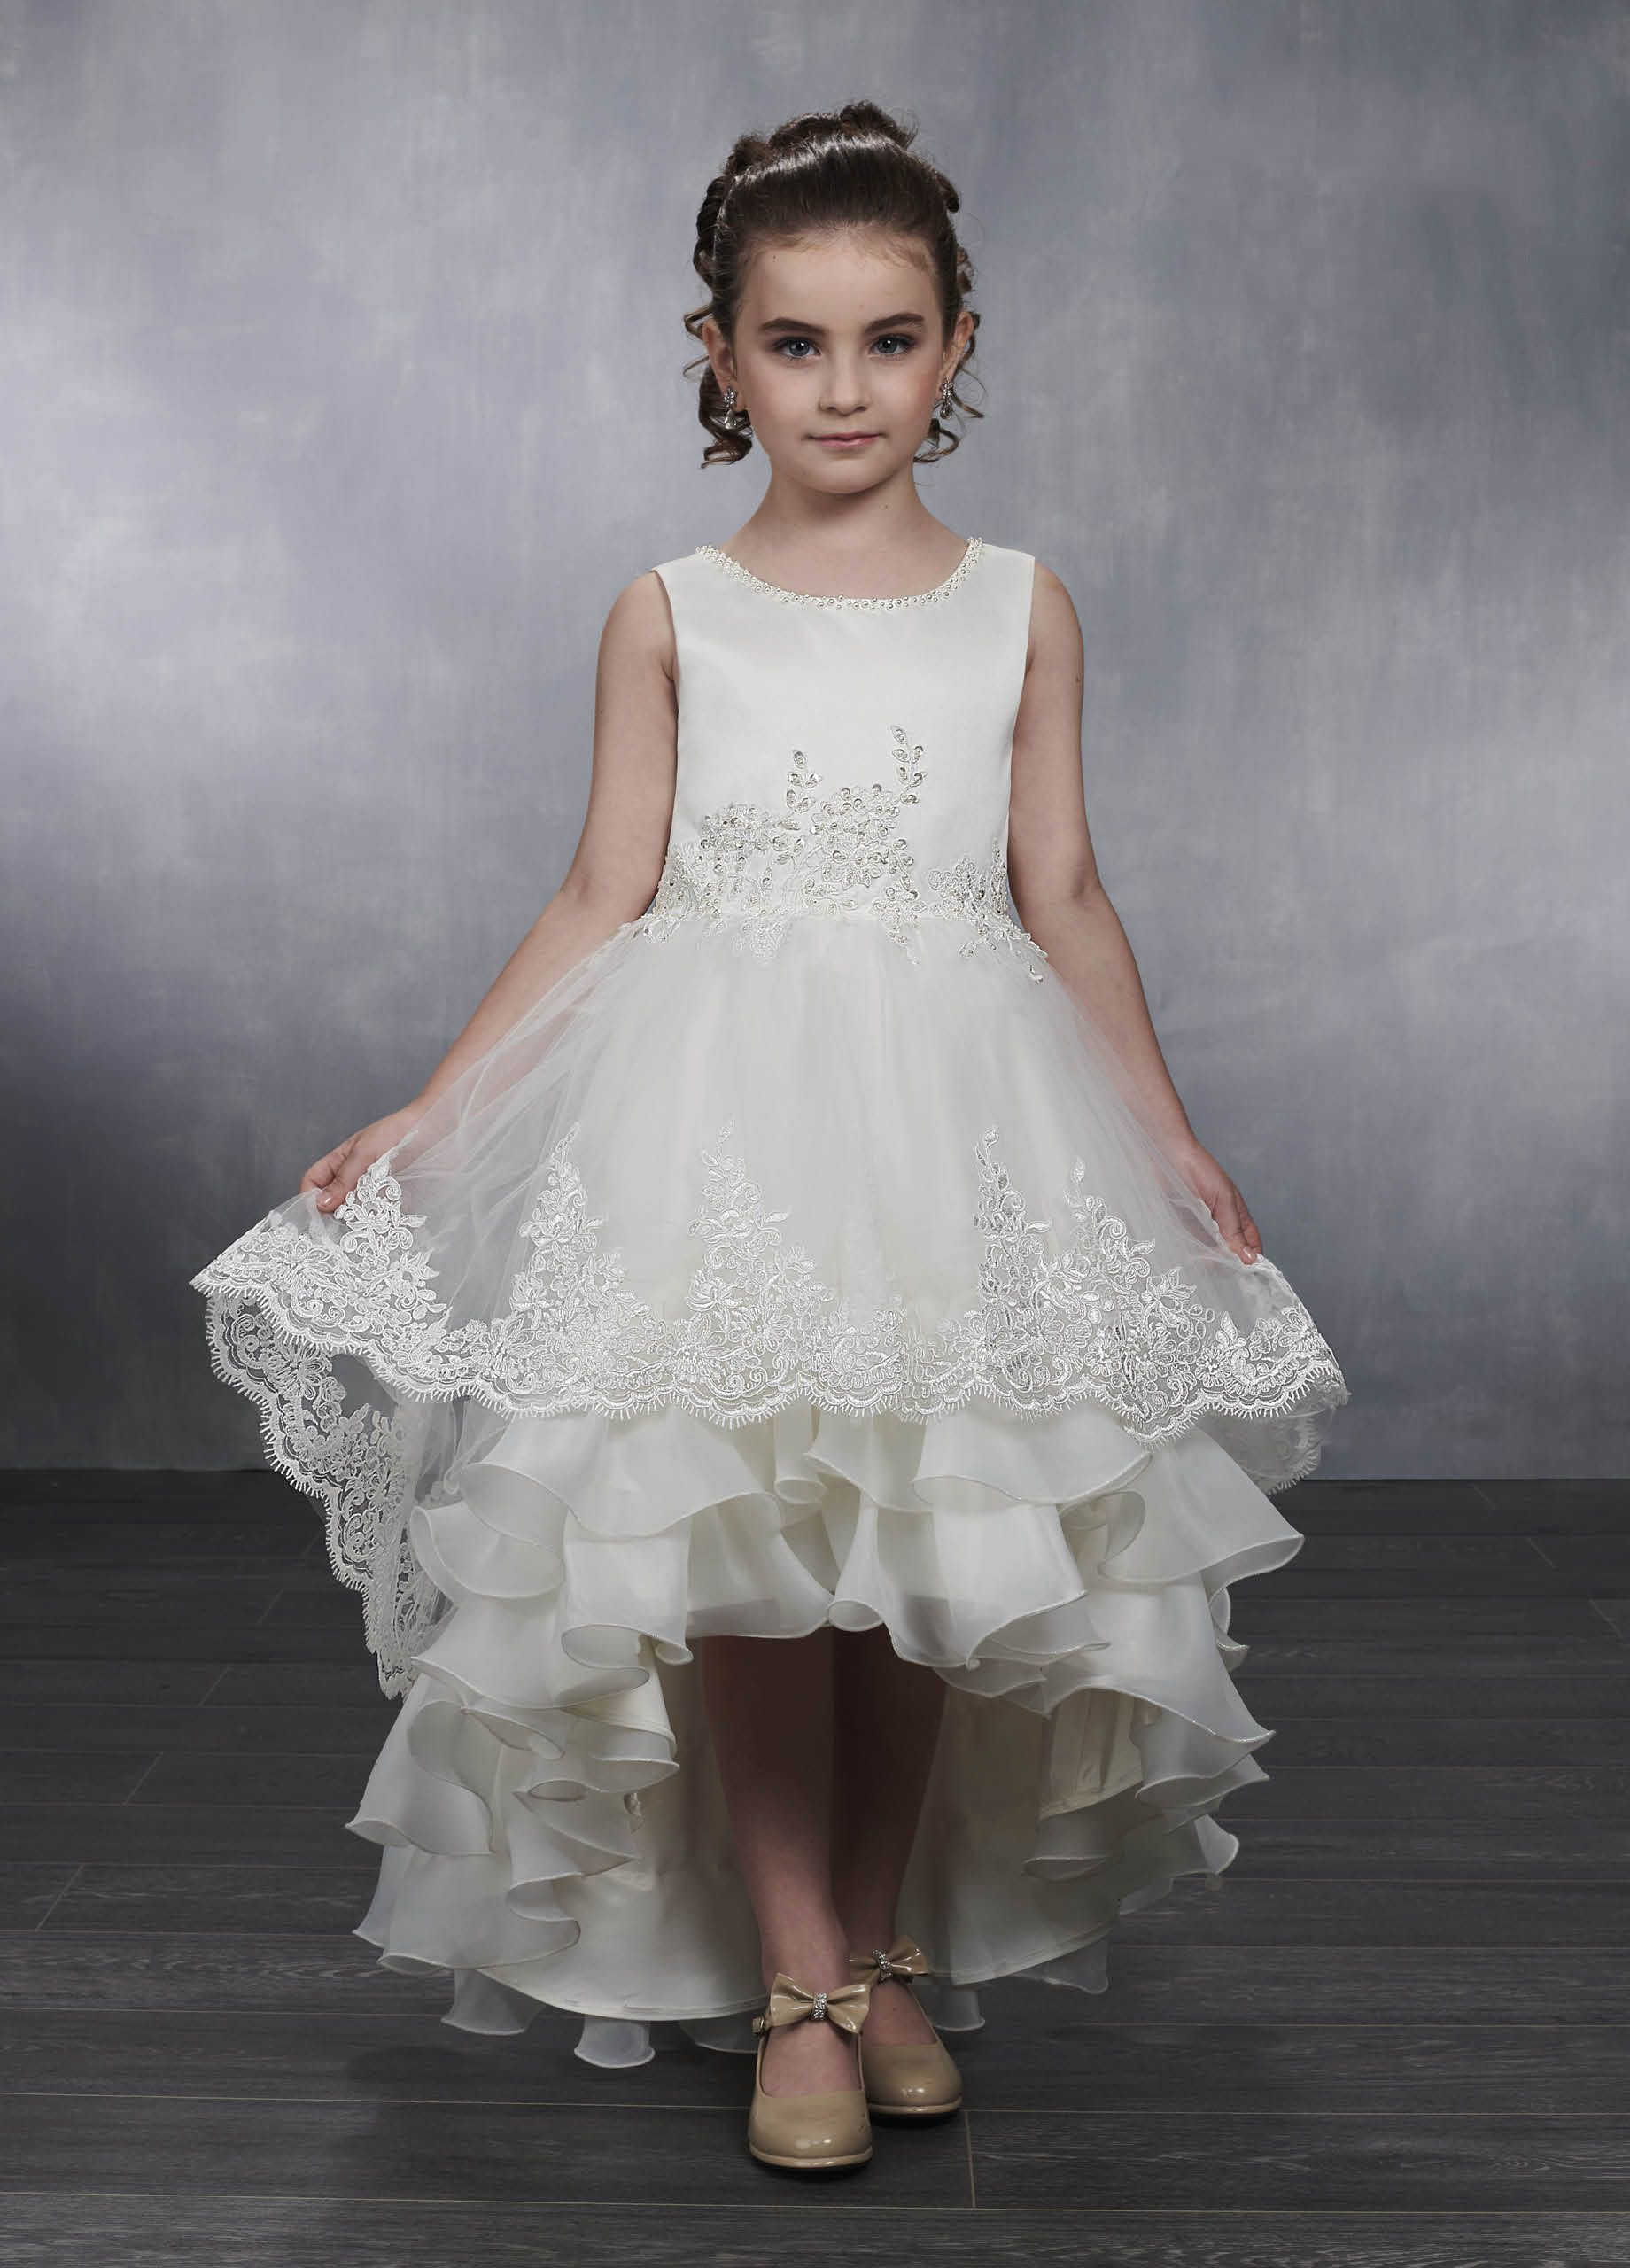 563db0ccfe8 Pearl Neck Ivory Satin Tulle Lace Trim Tiered High Low Skirt Flower Girl  Dress